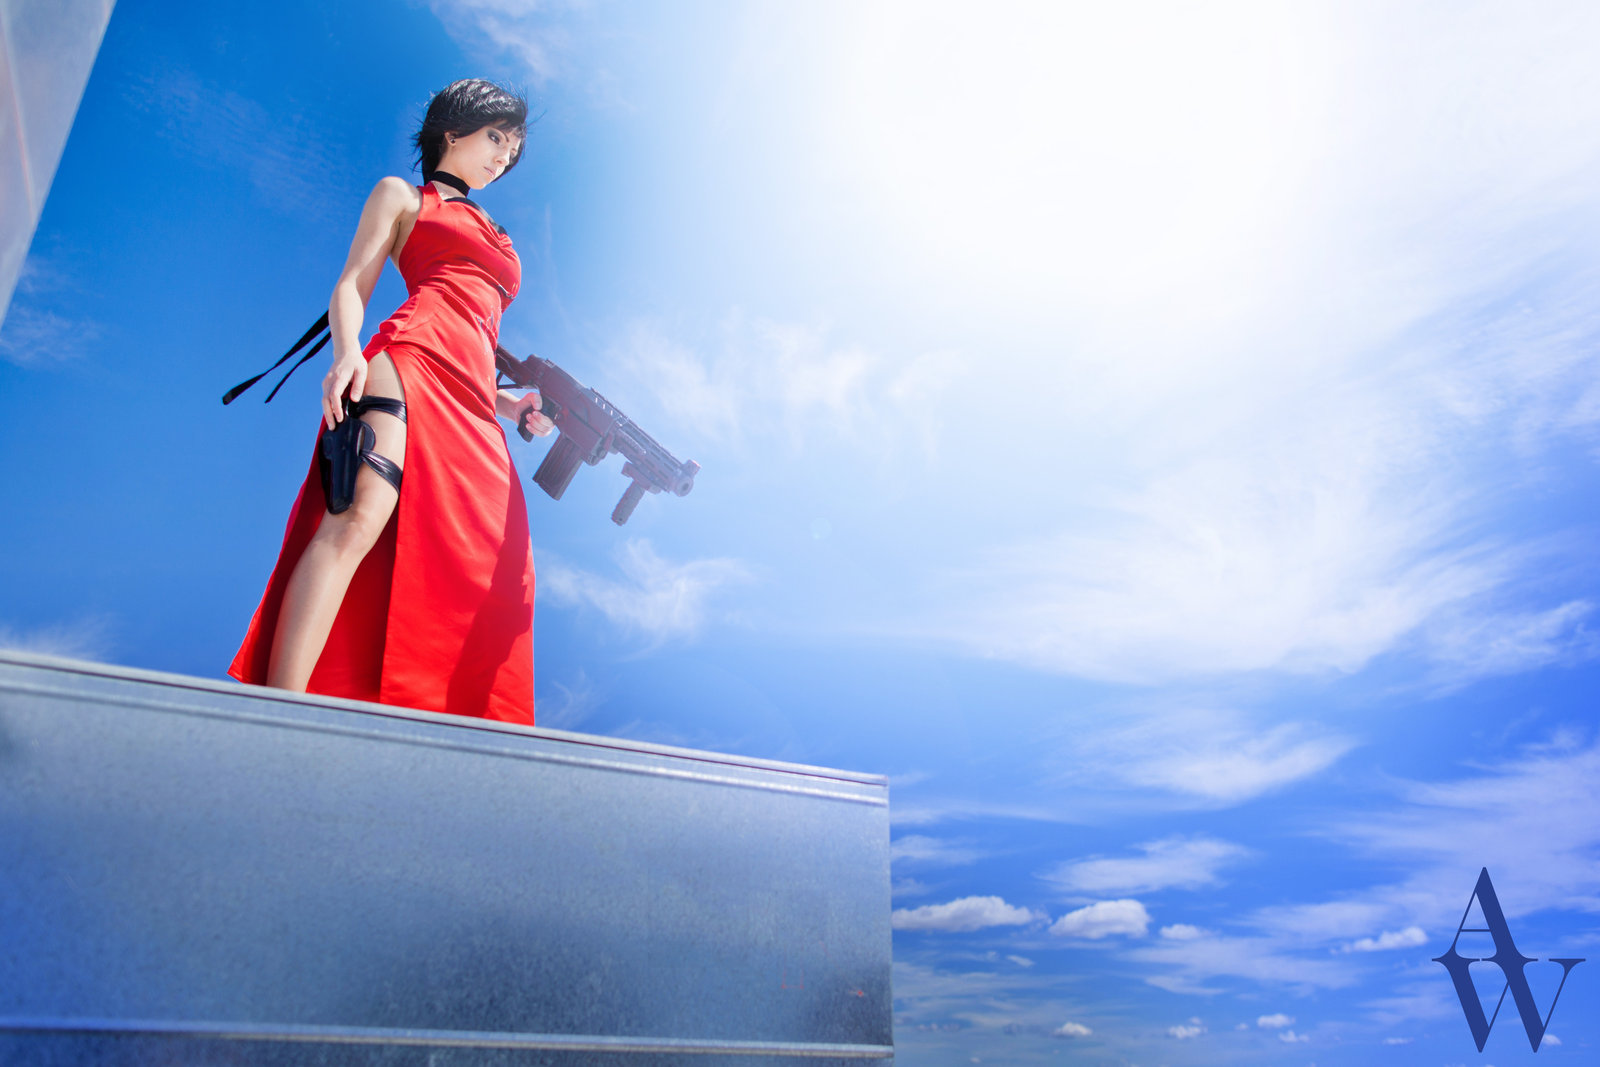 Ada Wong Cosplay Hot